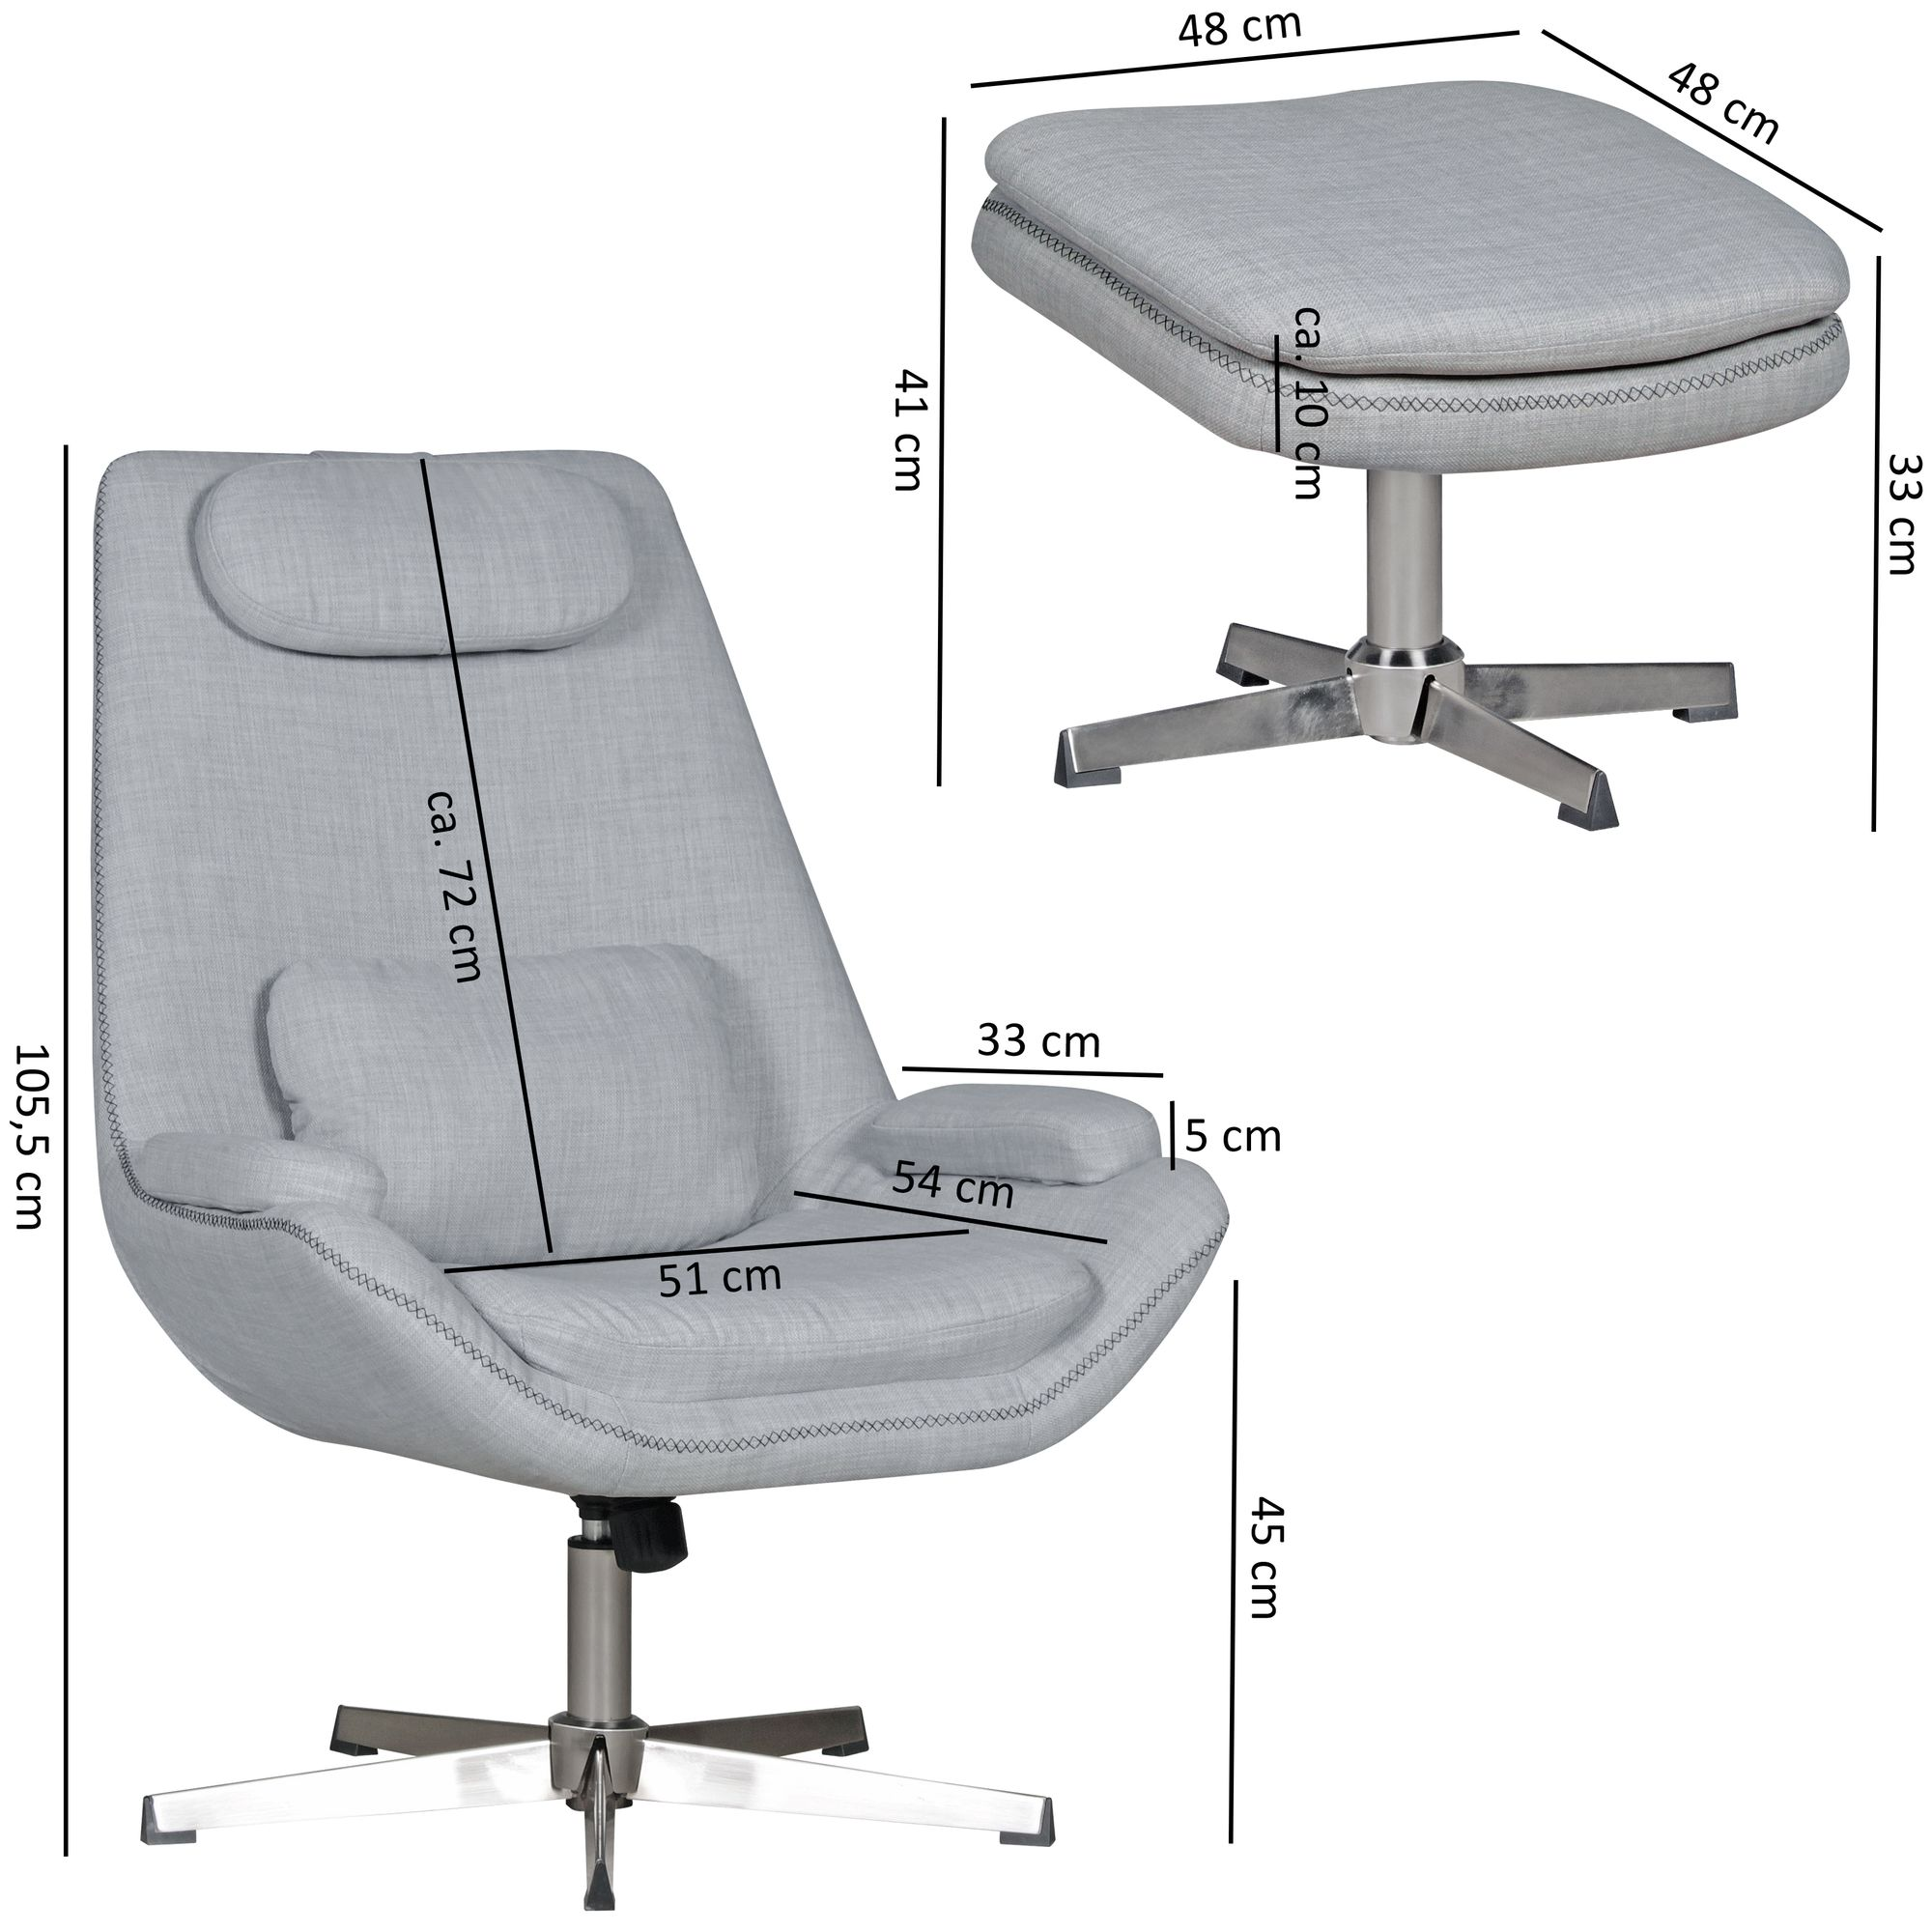 Lesesessel Design Wohnling Relaxsessel Sonja Stoff Grau 74x105 5x81cm Design Fernsehsessel Bequemer Sessel Mit Hocker Lesesessel Drehsessel Mit Fußablage